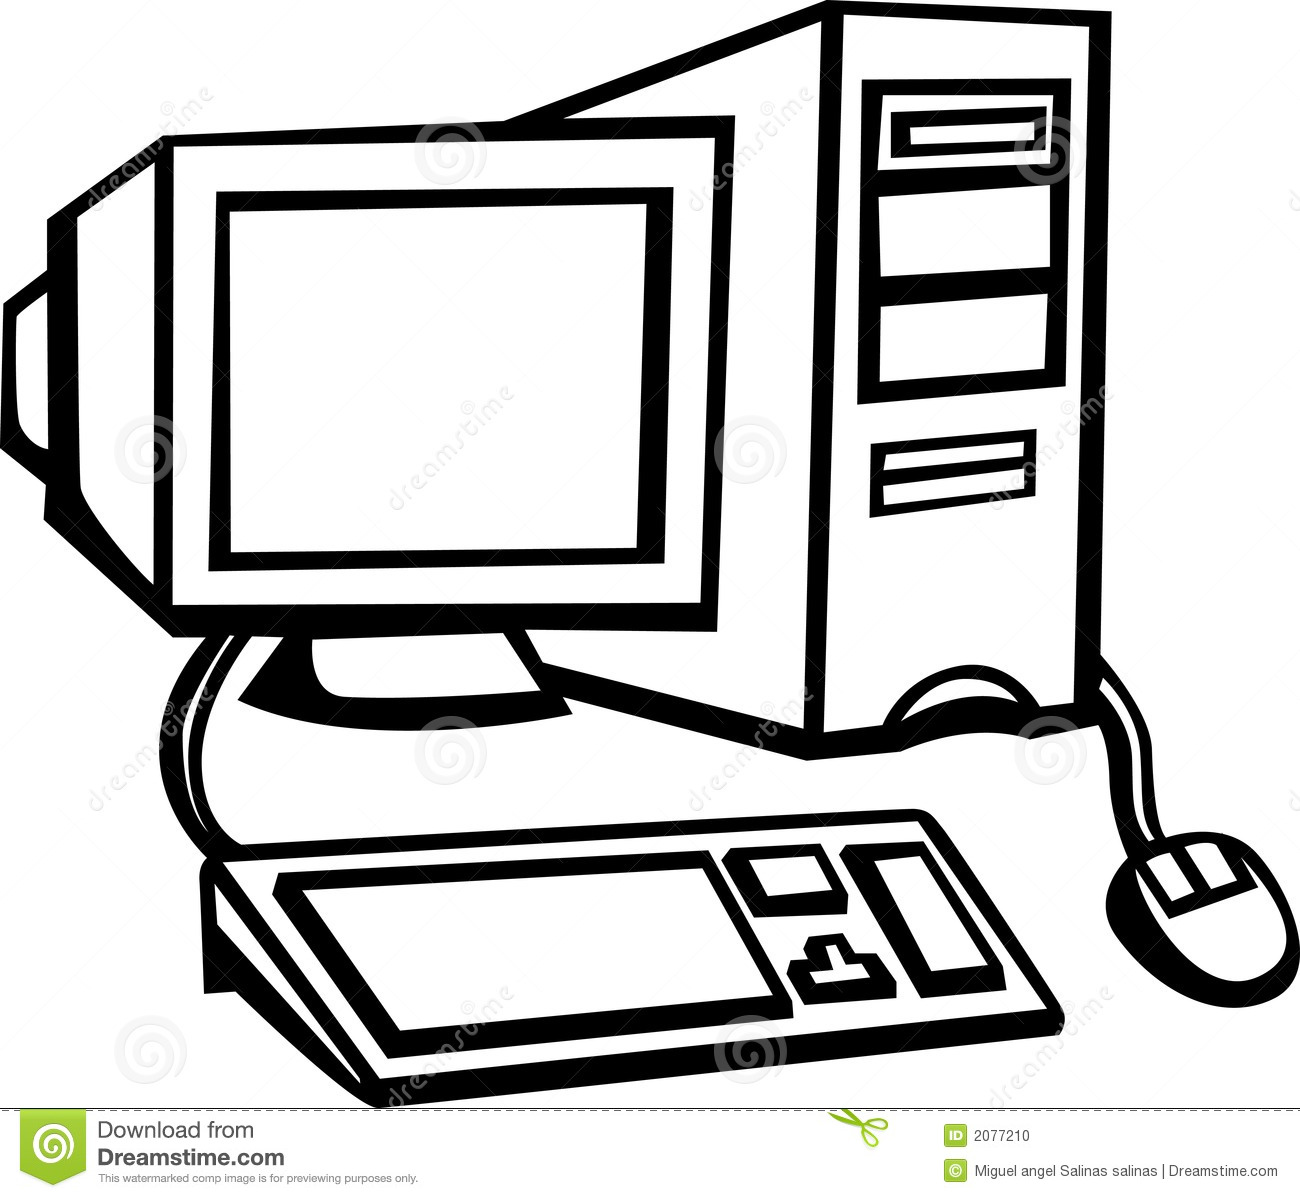 Black kid on computer clipart png royalty free stock 78+ Computer Clipart Black And White | ClipartLook png royalty free stock